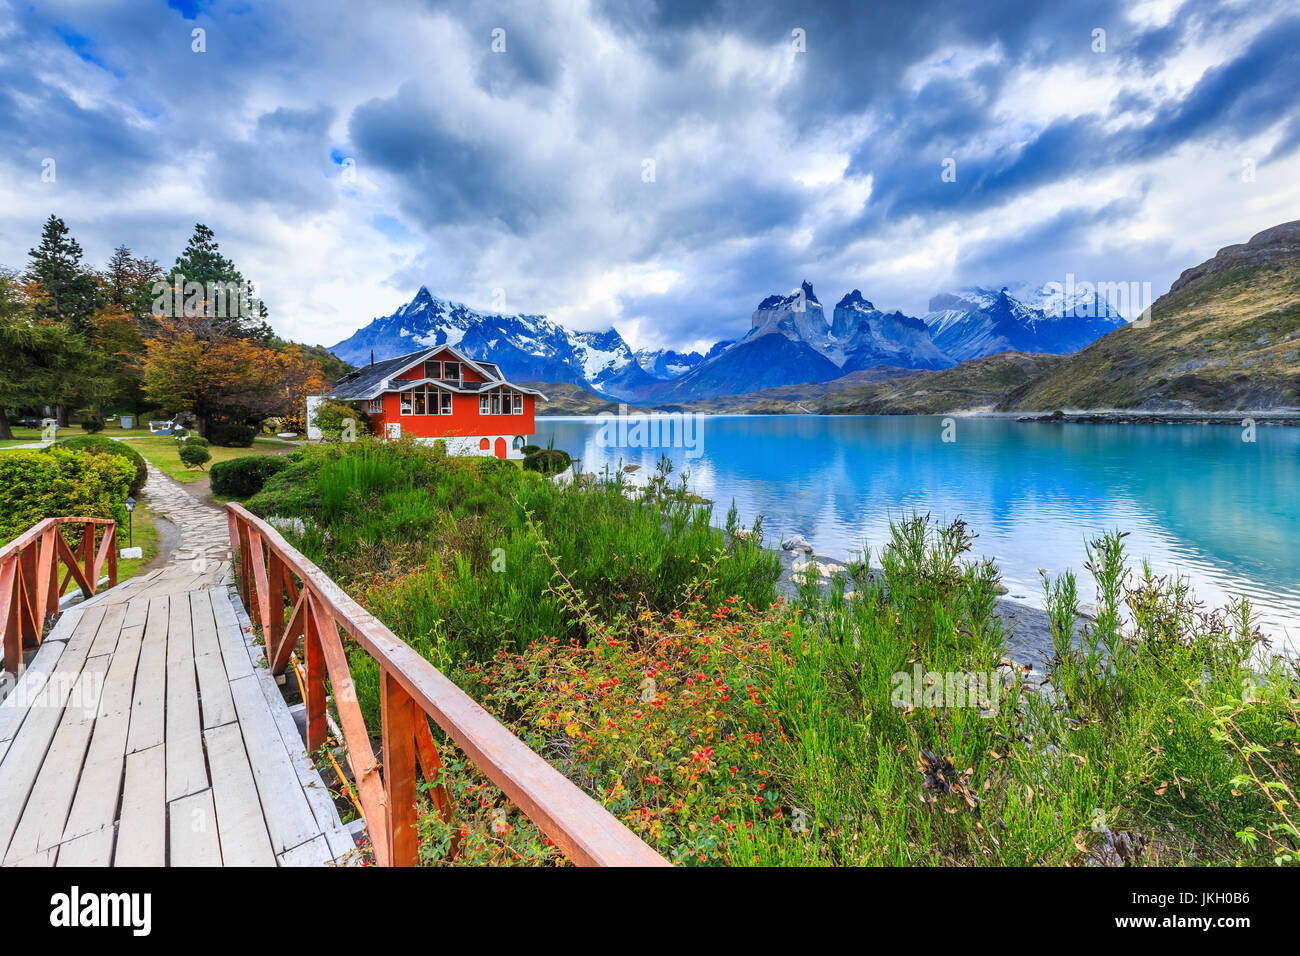 Parc National Torres del Paine, Chili. Le Lac Pehoe. Photo Stock